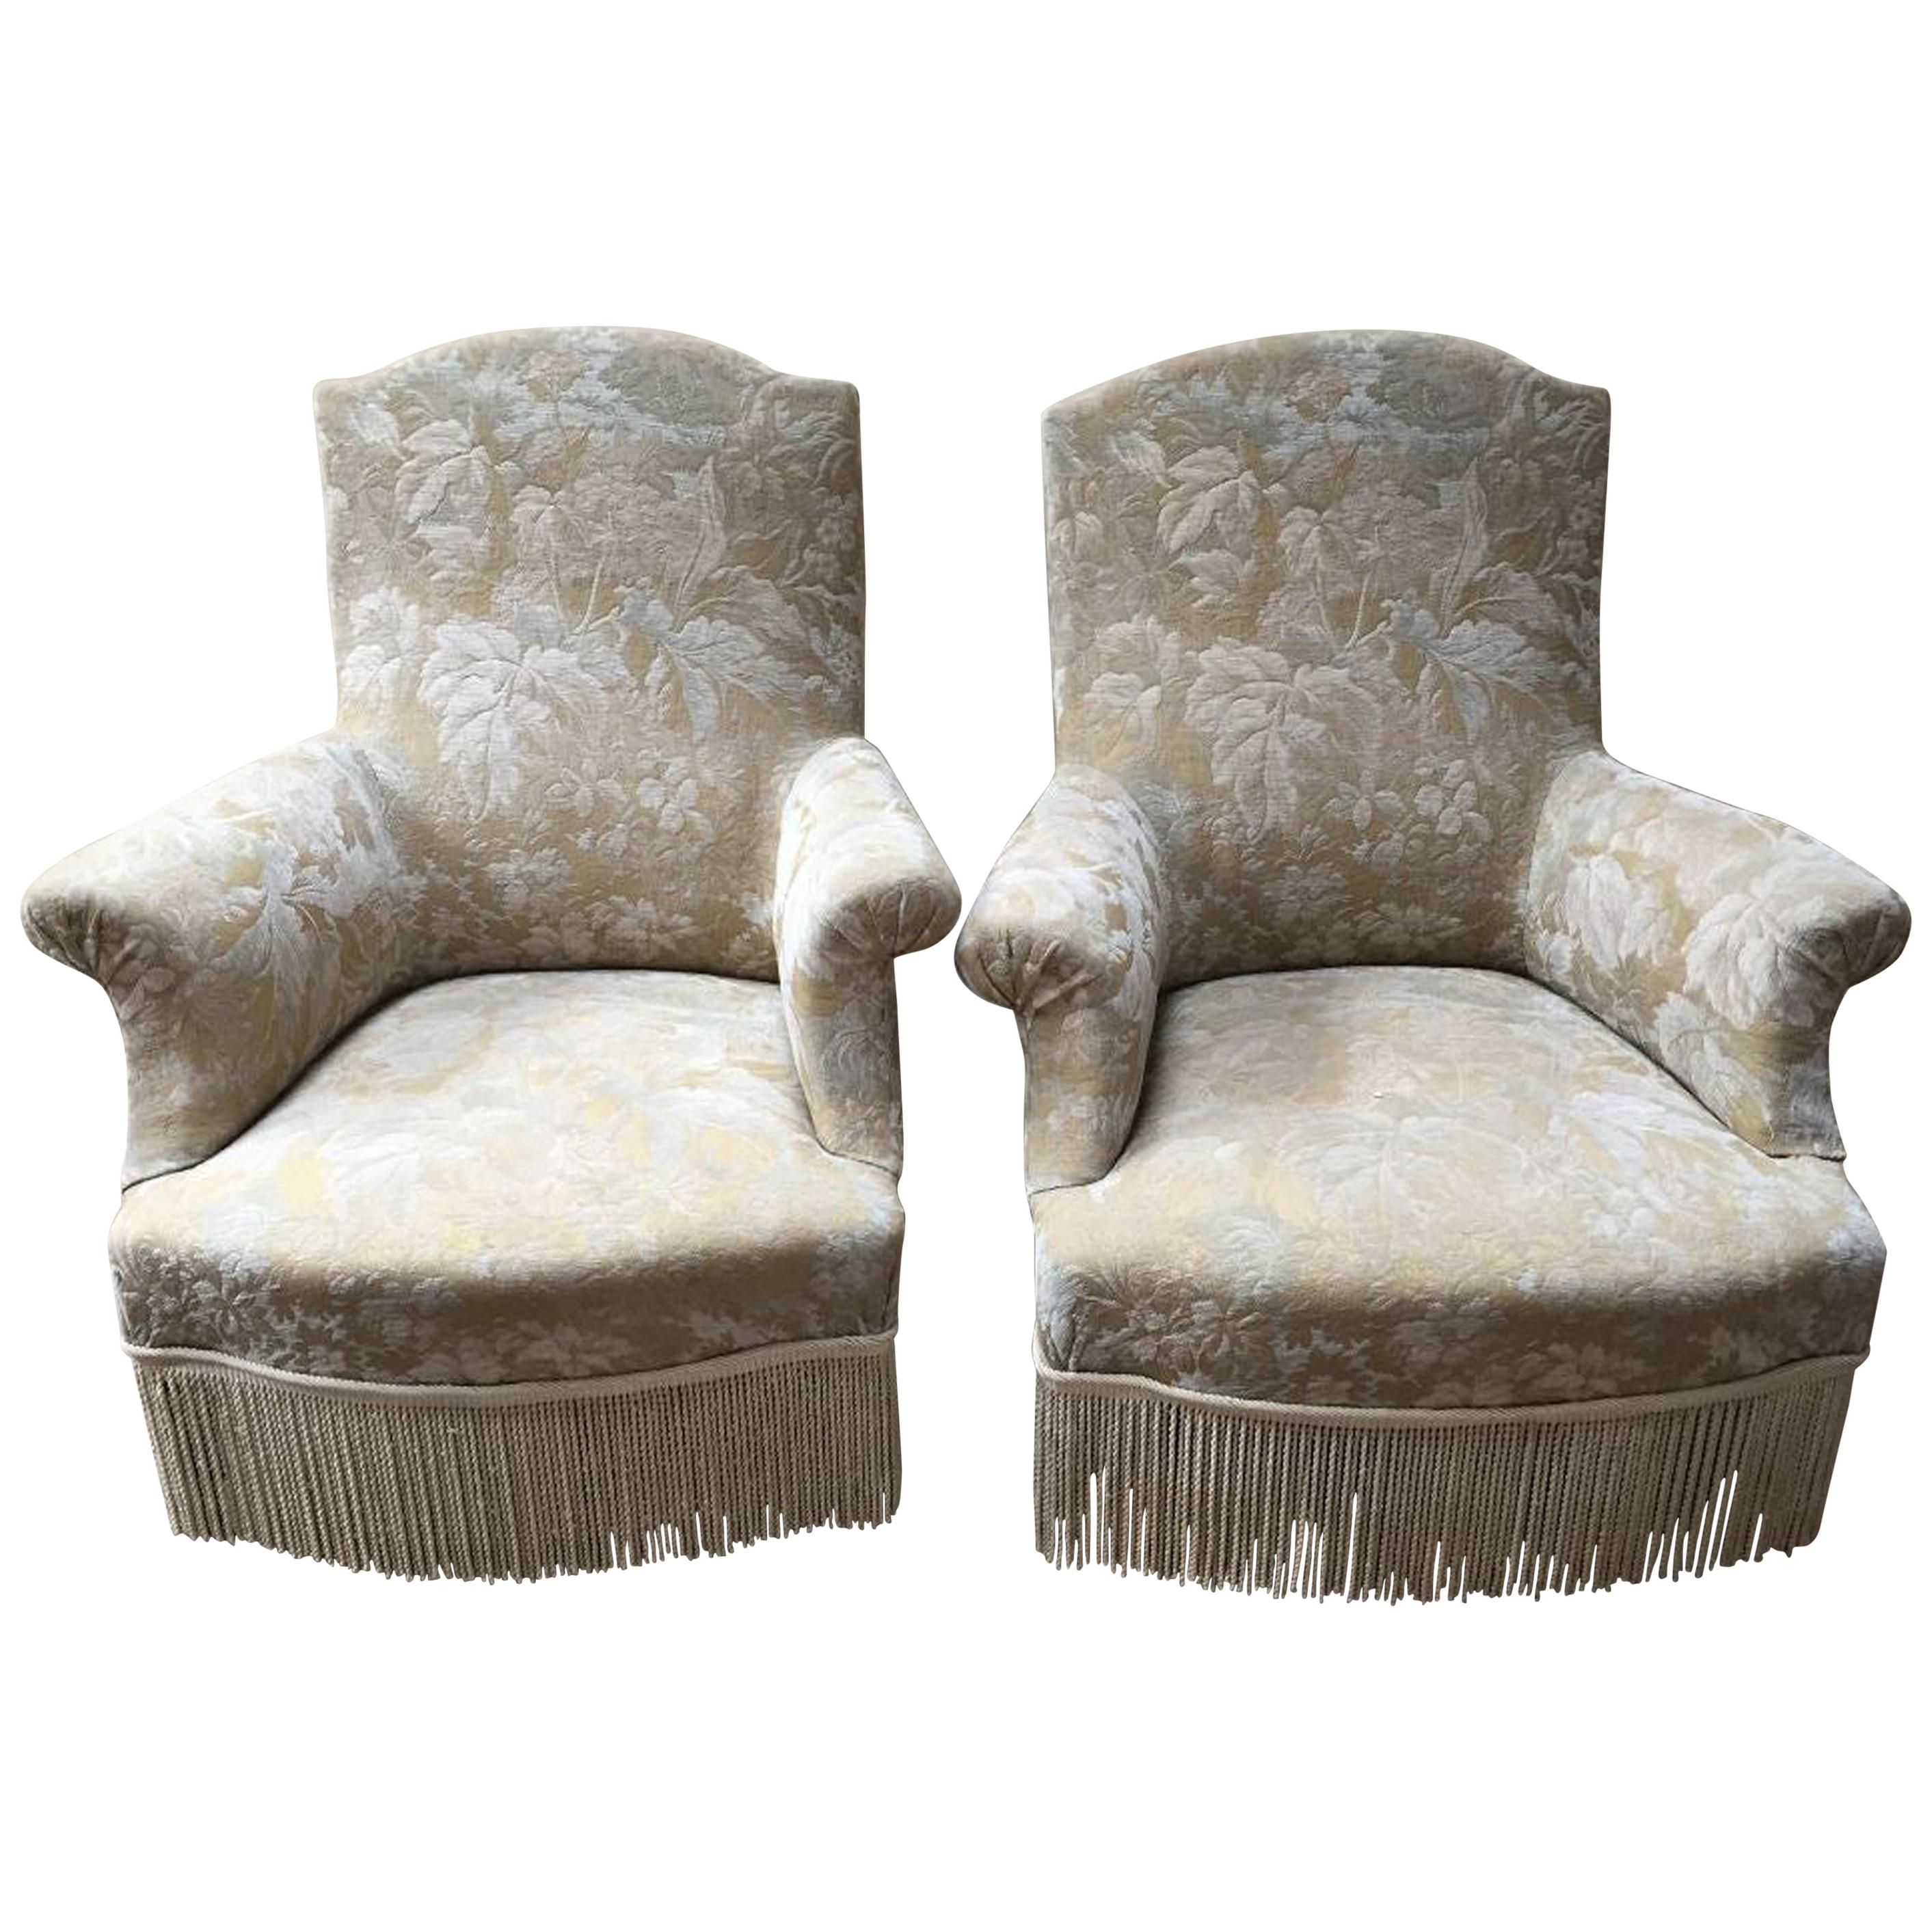 Antique and vintage bergere chairs 922 for sale at 1stdibs